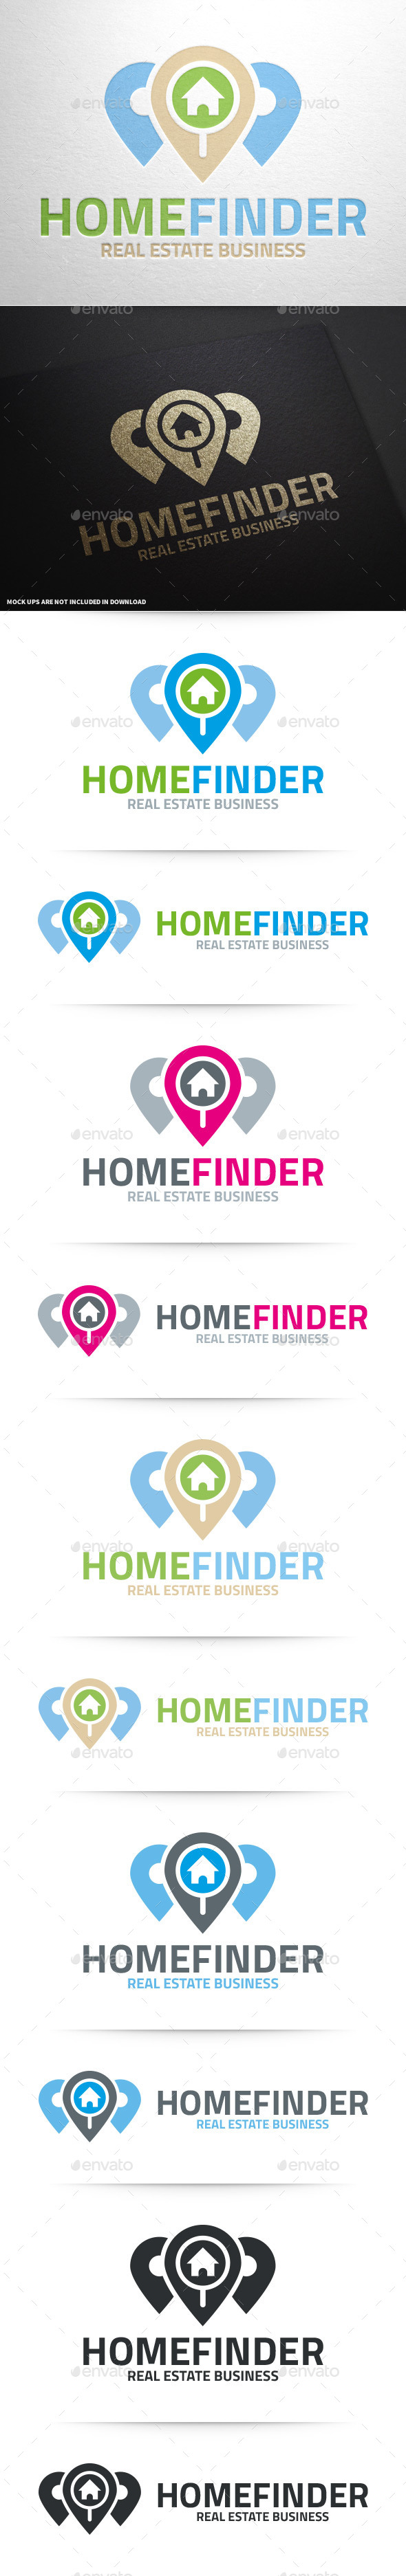 Home Finder Logo Template - Objects Logo Templates